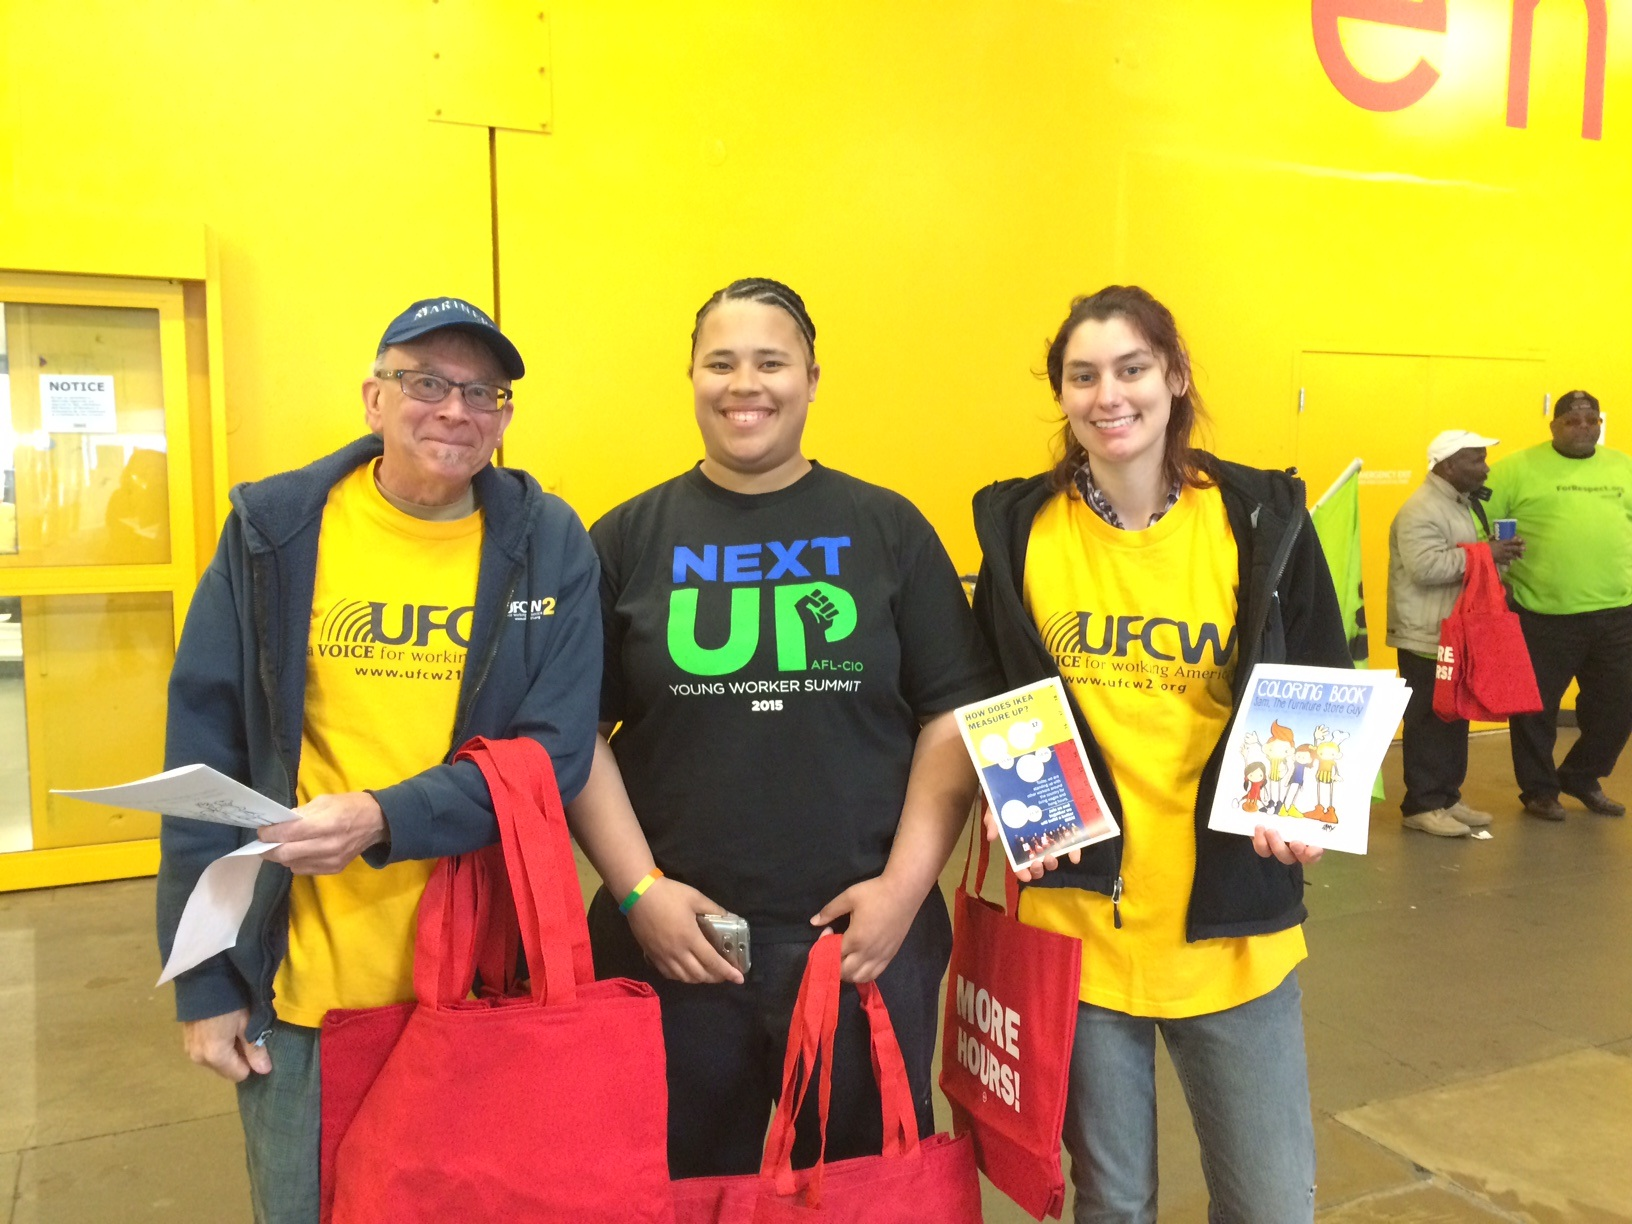 SAM CHASE (FAR RIGHT) WITH UFCW 21 MEMBERS AMES REINHOLD AND ARIANA DAVIS AT AN IKEA ACTION.